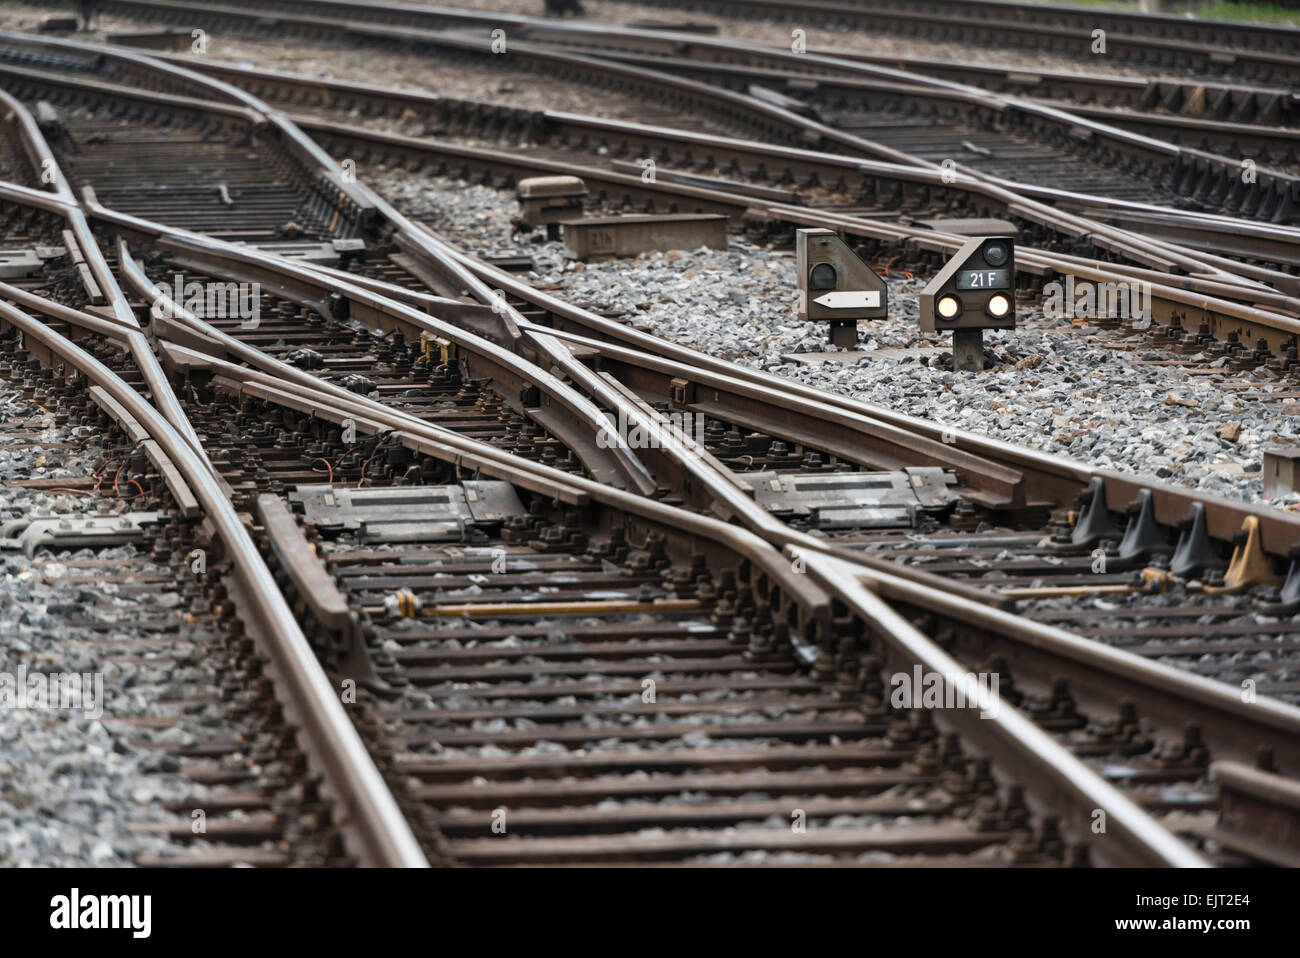 Railway tracks and switches on the track field of Zurich main station, one of Europe's busiest railway stations. - Stock Image